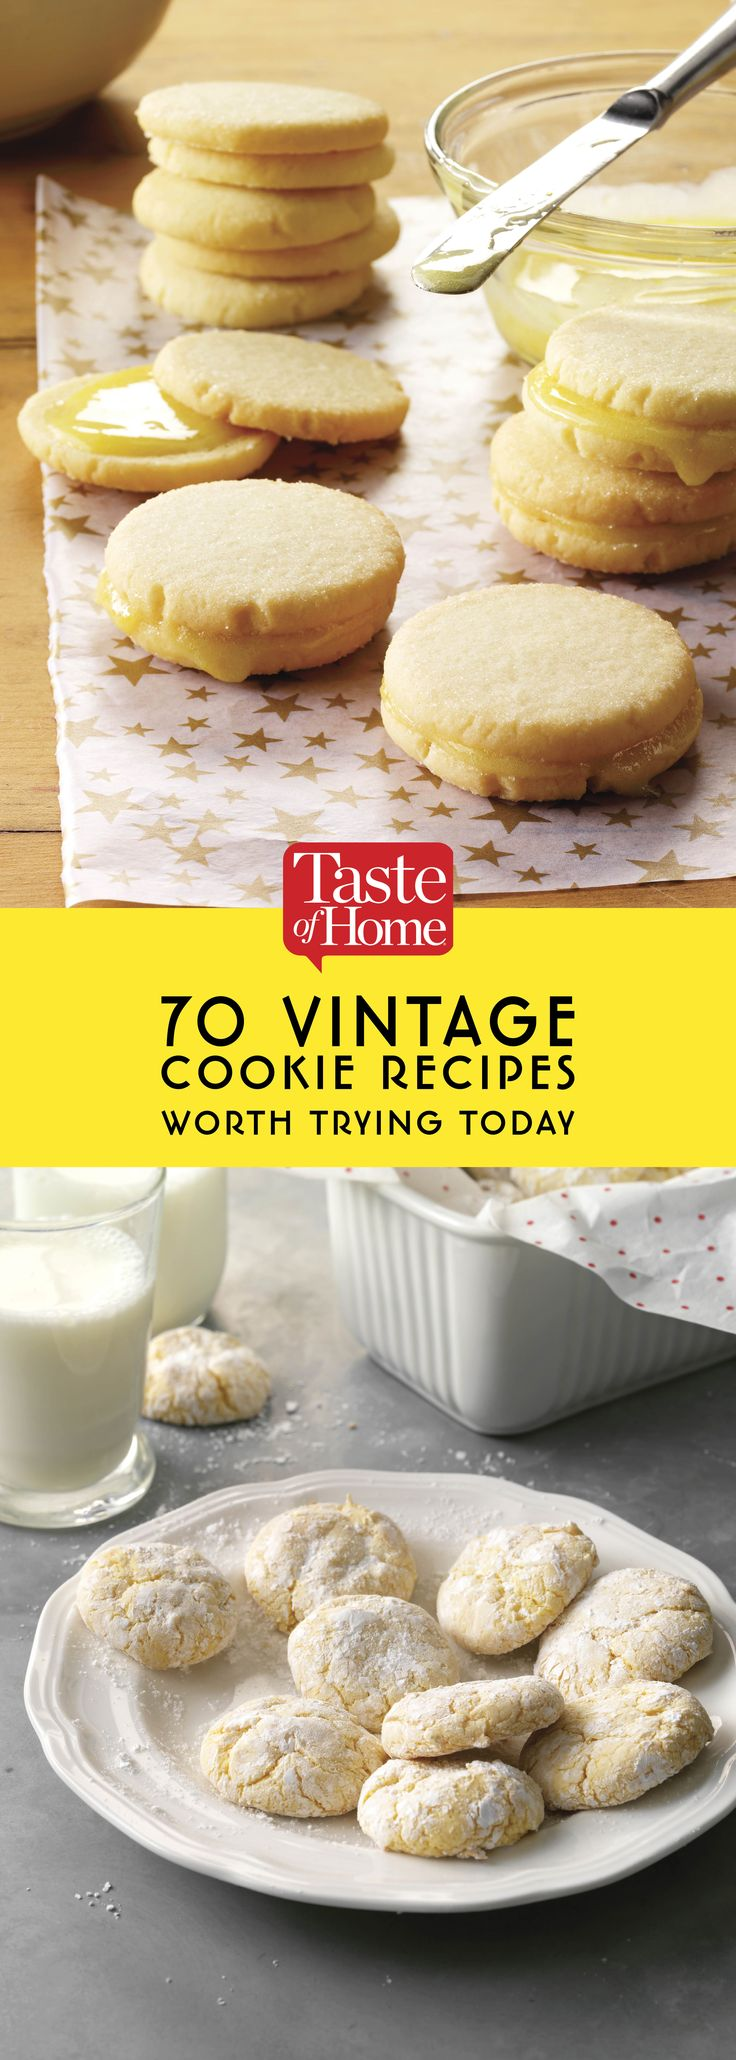 70 Vintage Cookie Recipes Worth Trying Today